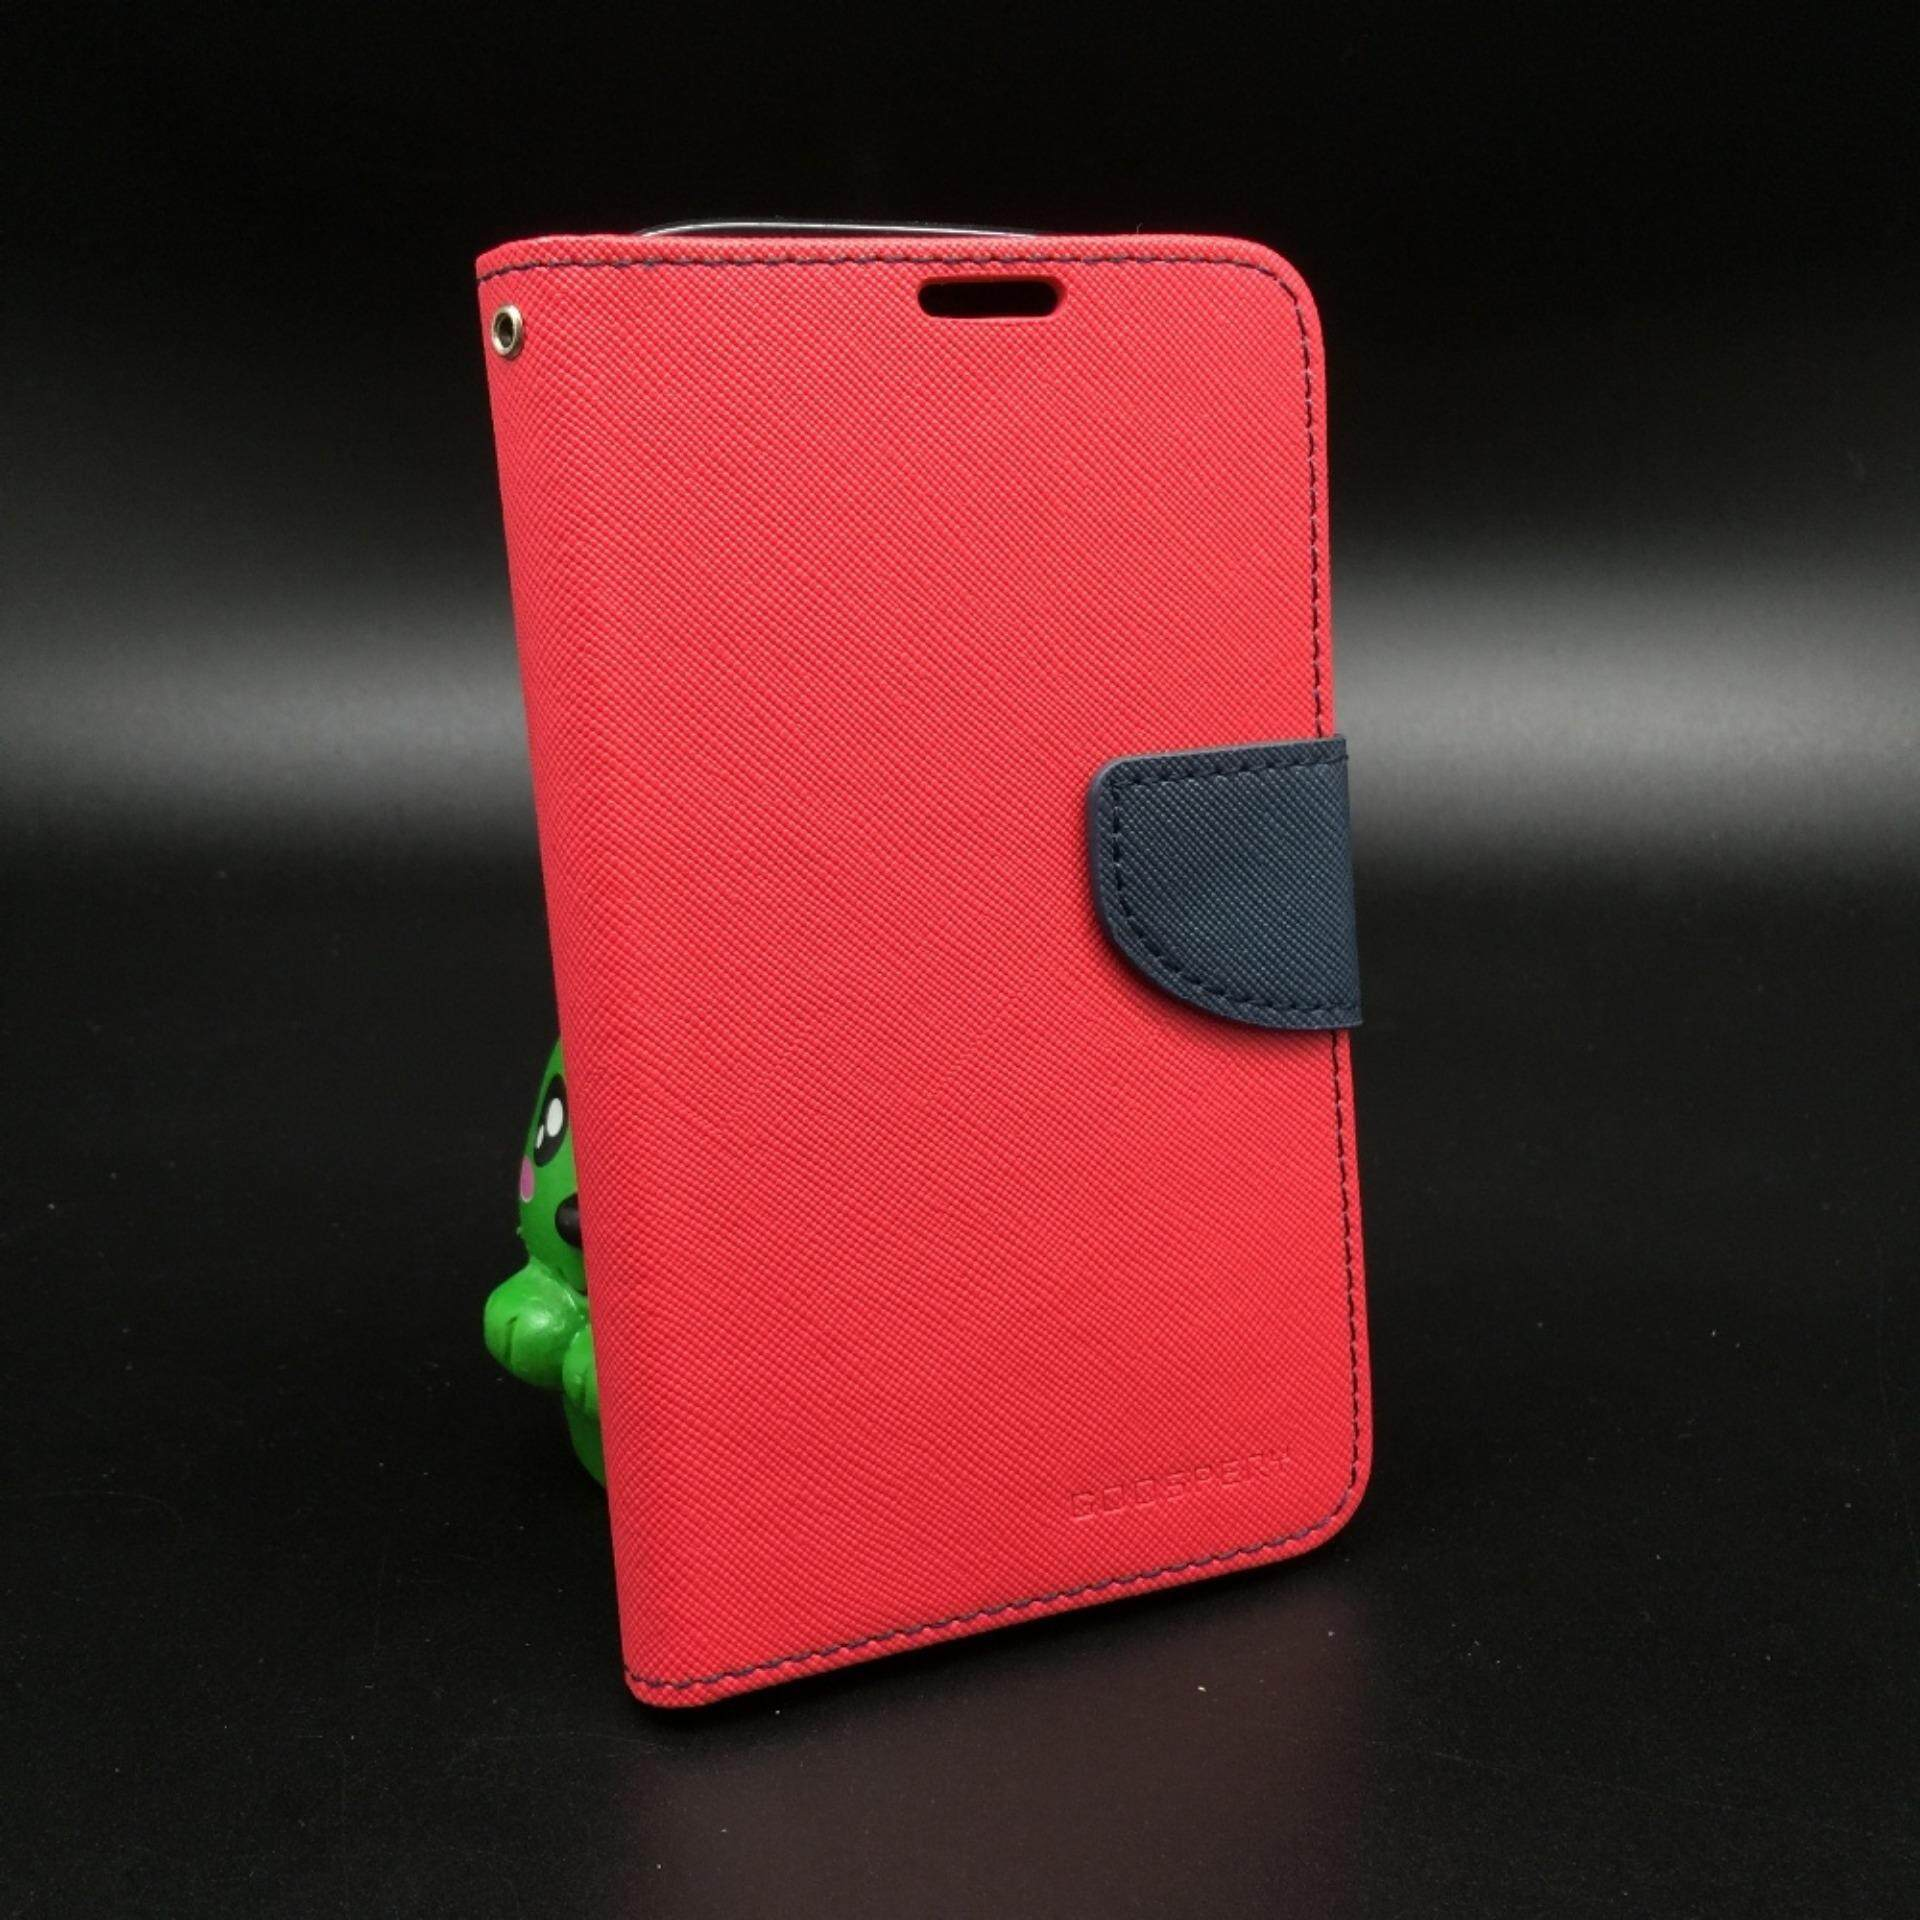 LENOVO A850 PLUS POUCH BAG -- RED